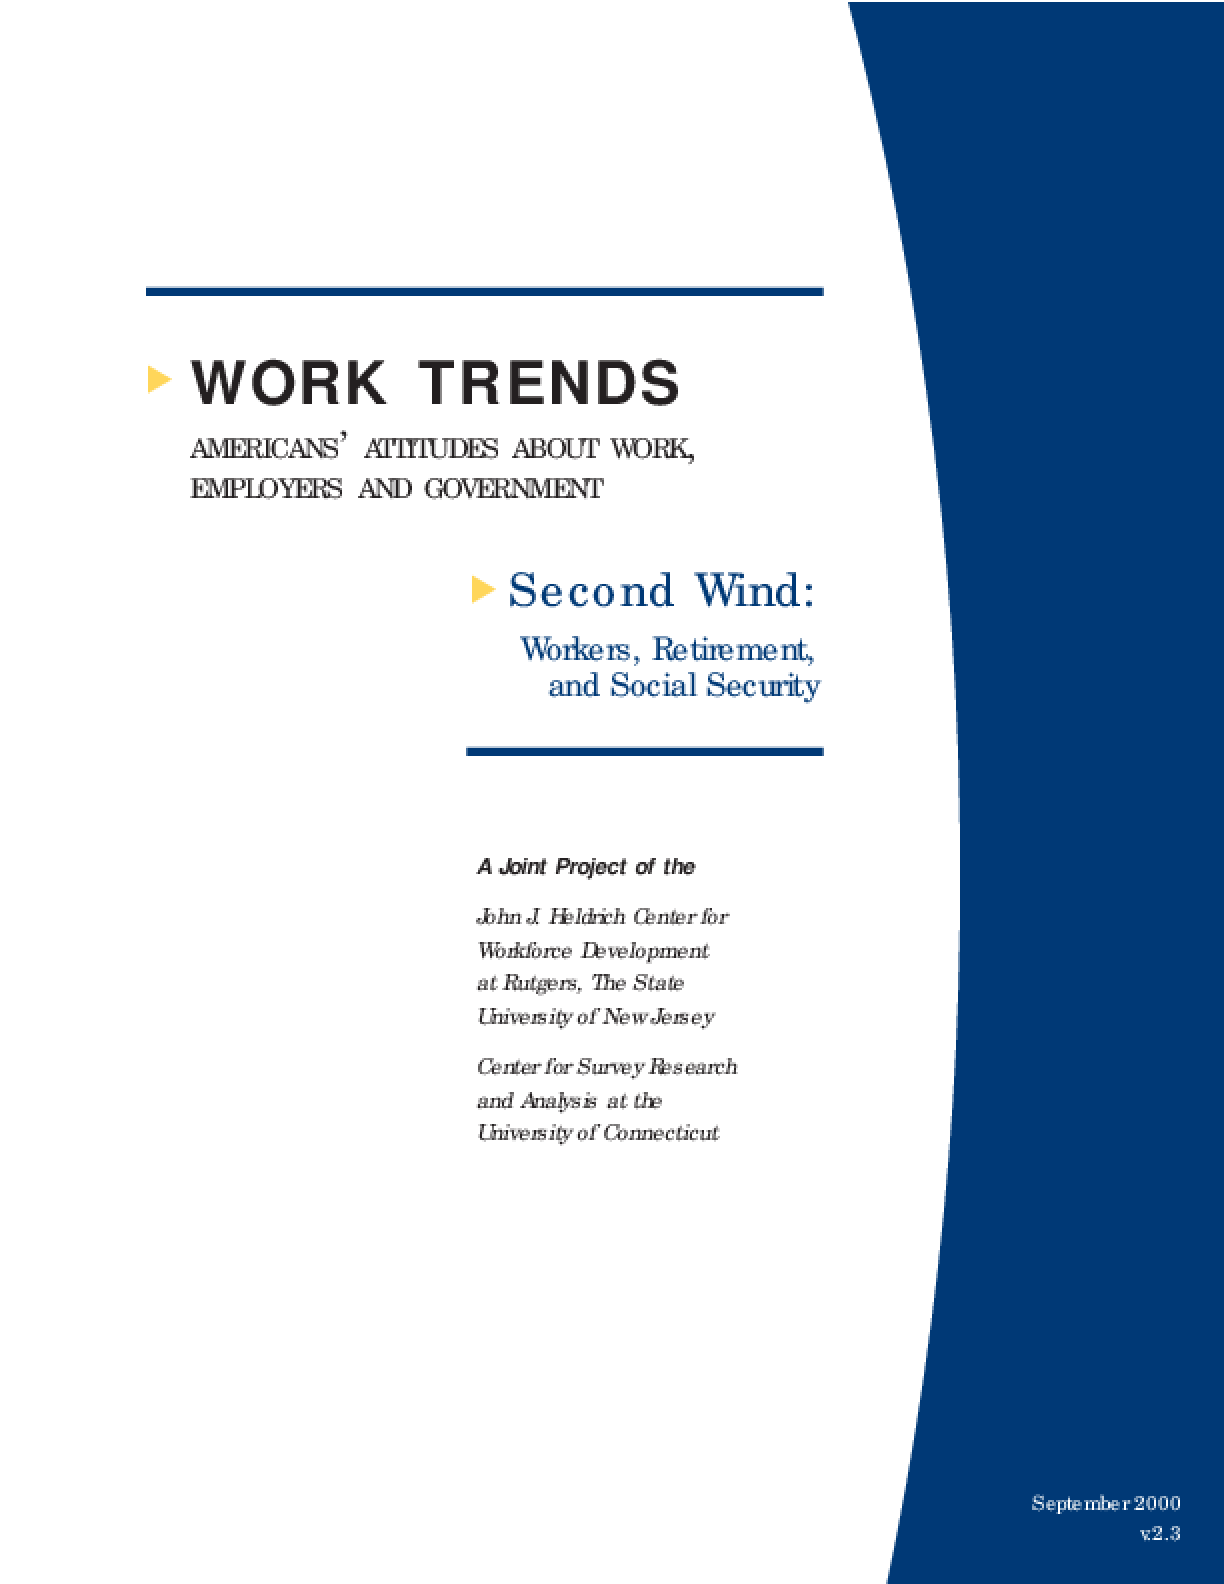 Second Wind: Workers, Retirement, and Social Security